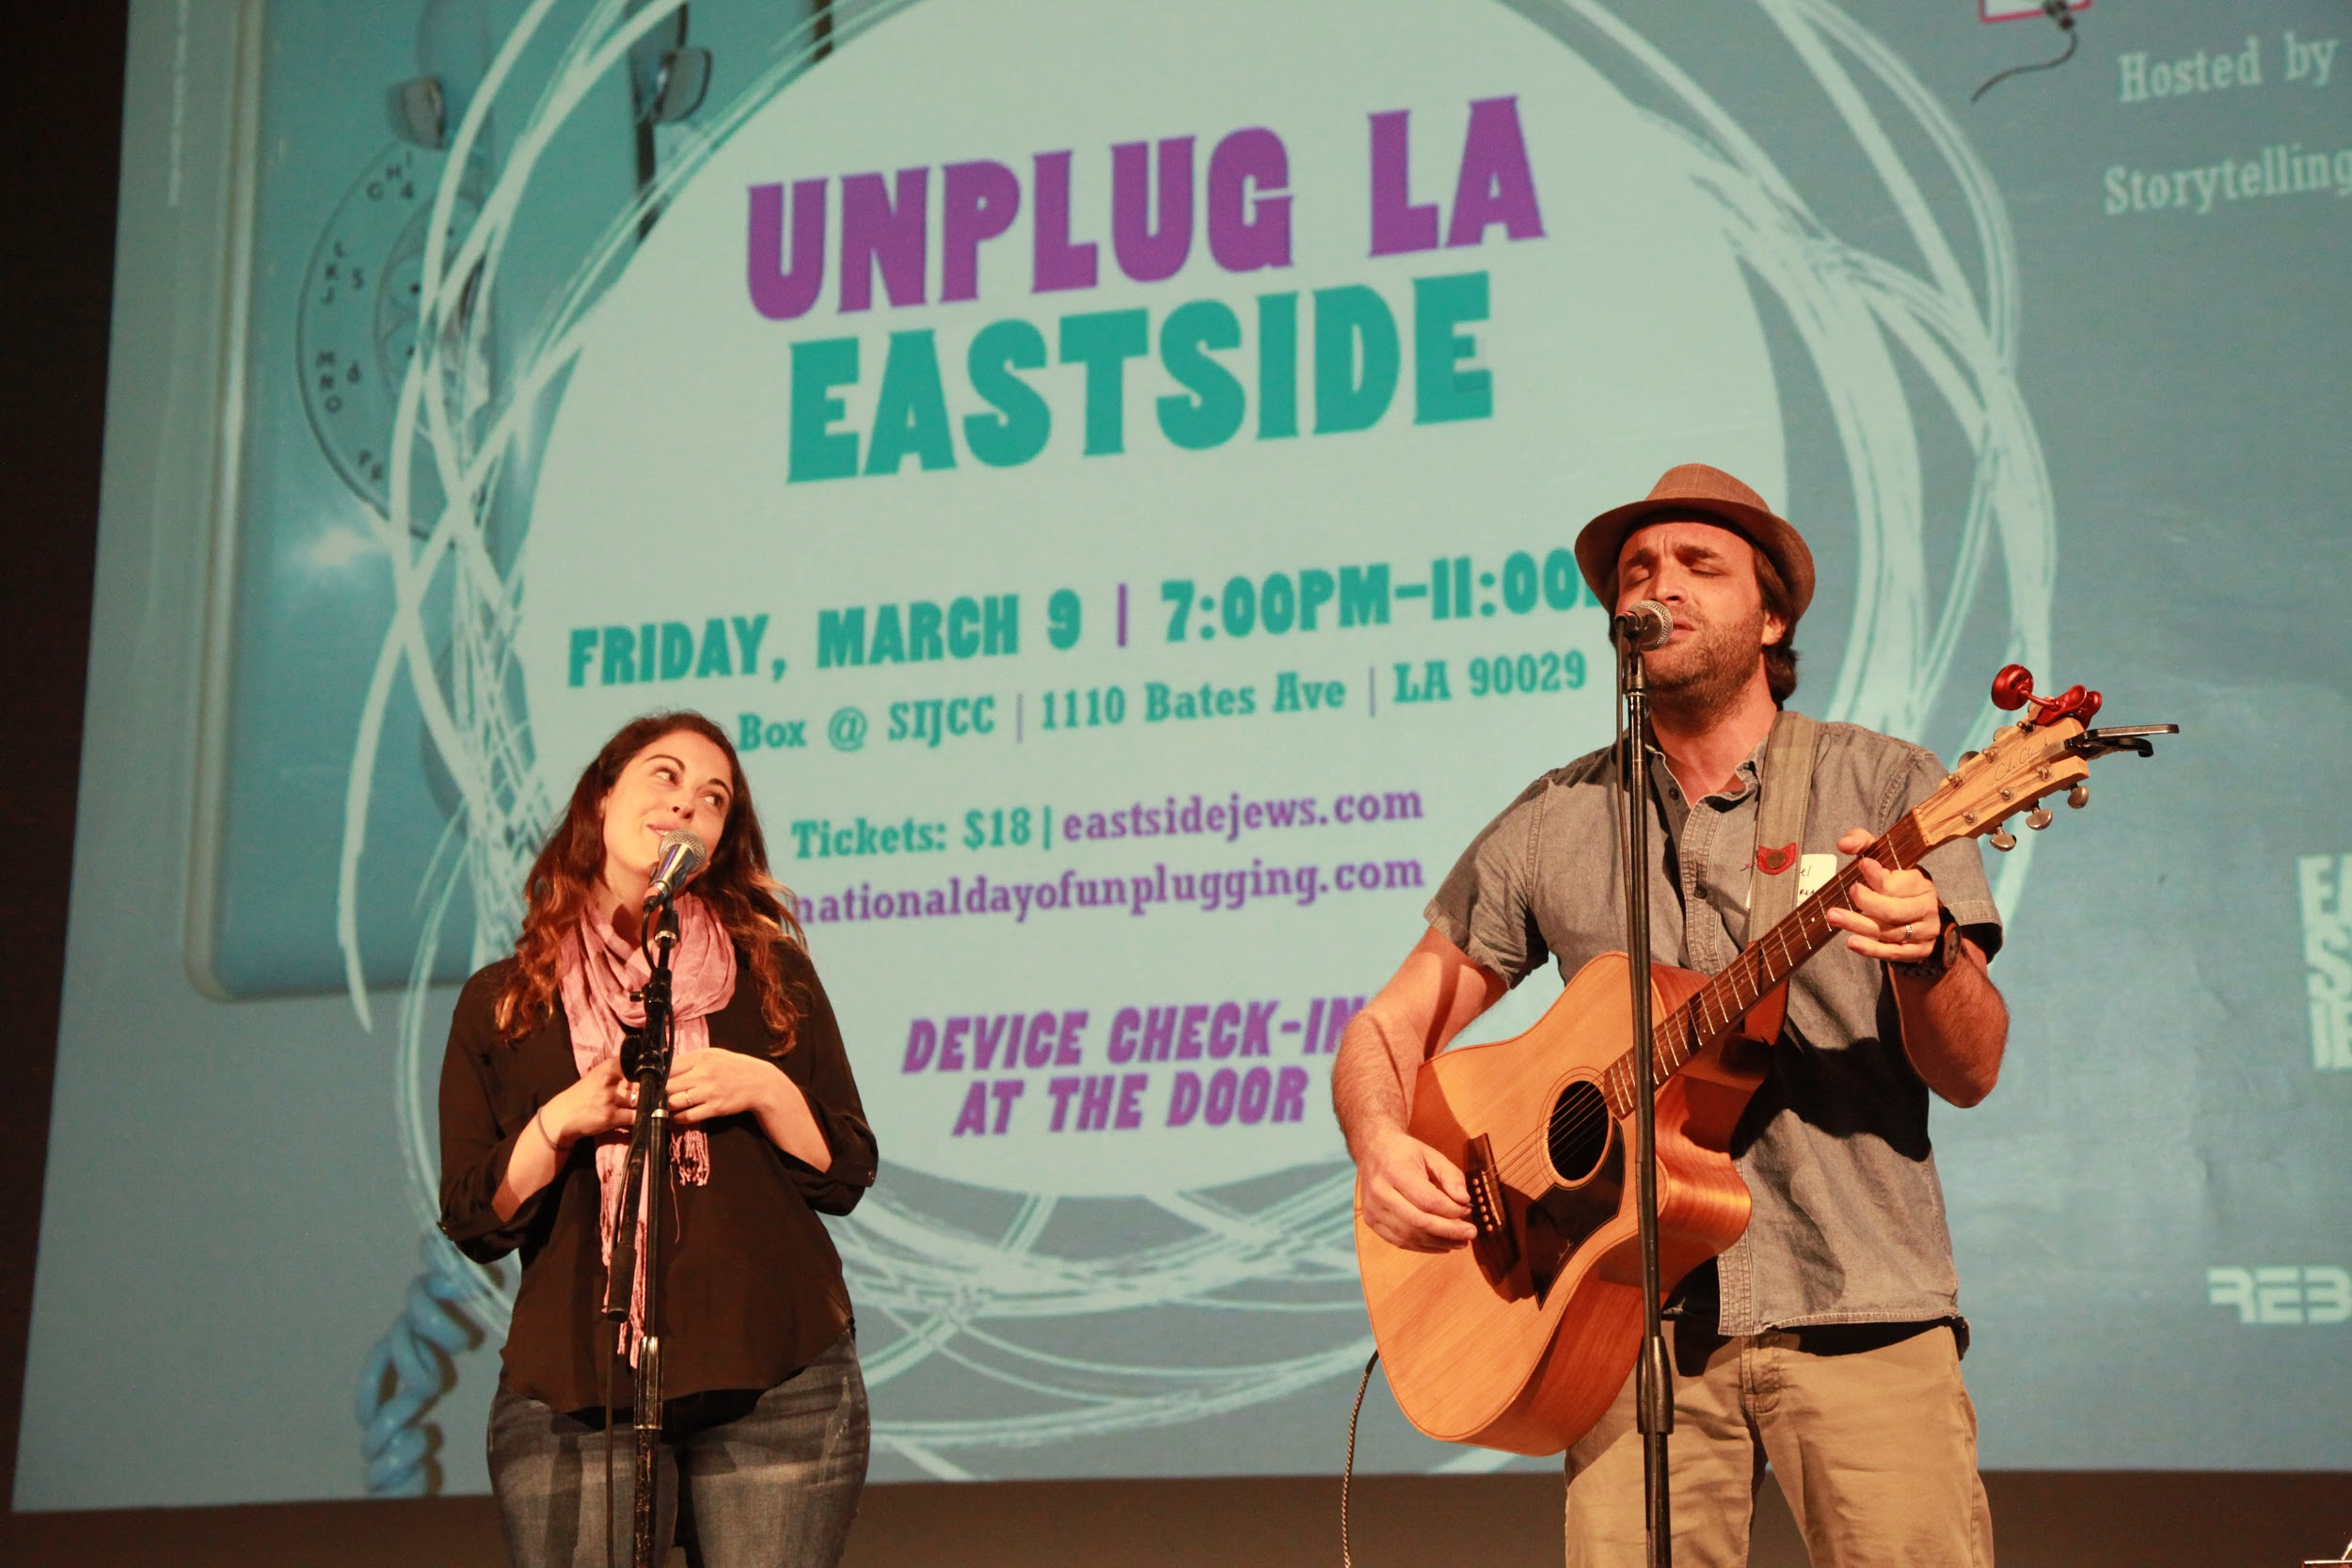 Performers at the Unplug LA Eastside event.